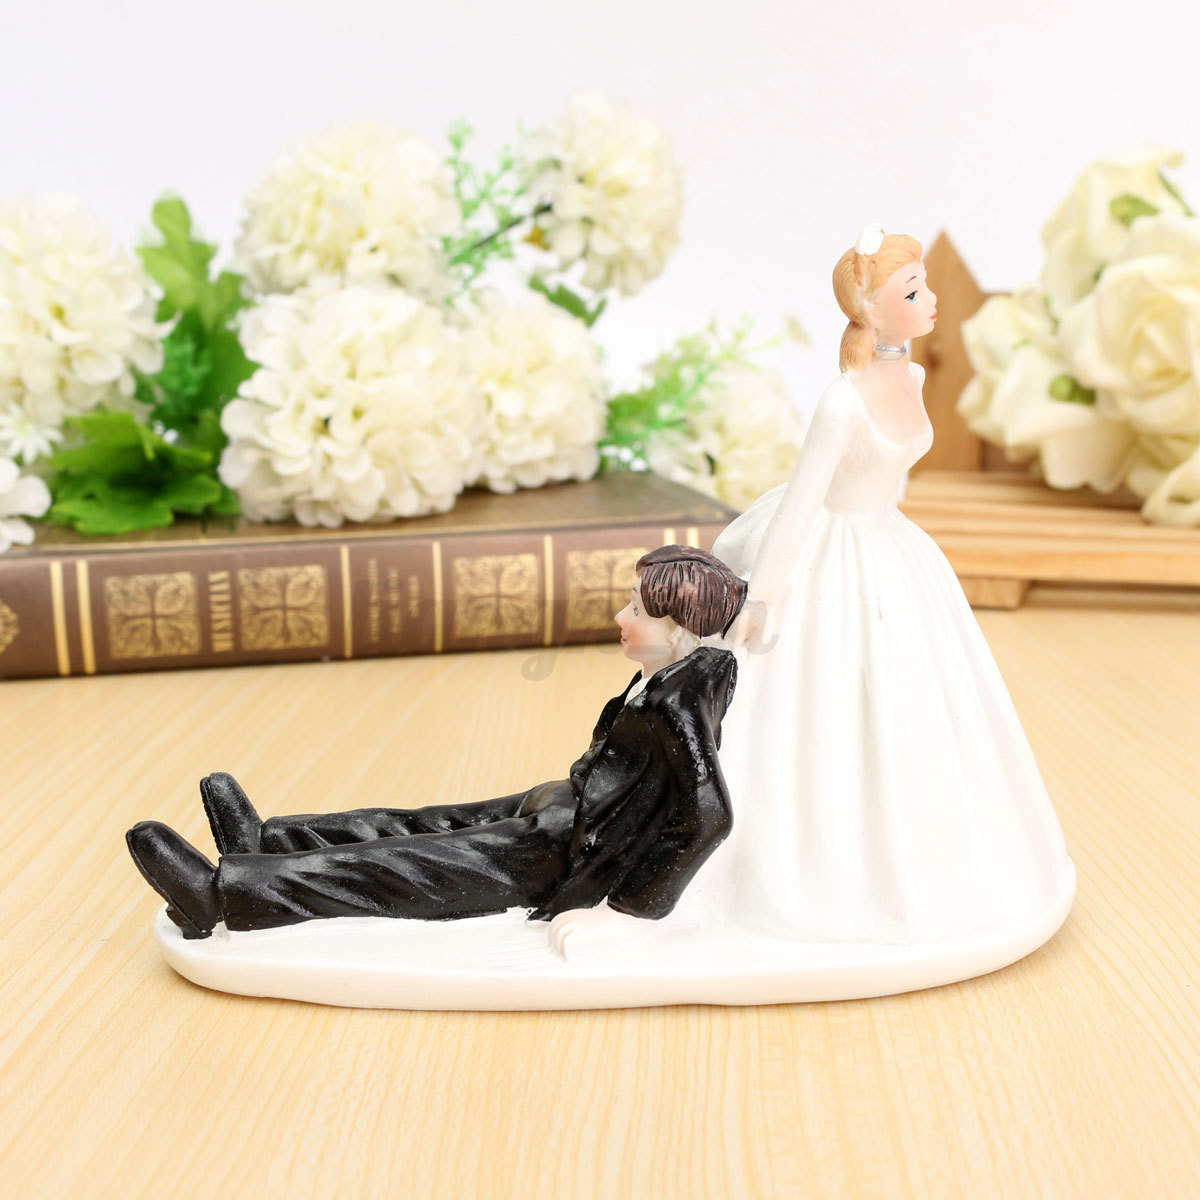 Romantic Bride & Groom Figure Wedding Cake Toppers Couple Bridal ...